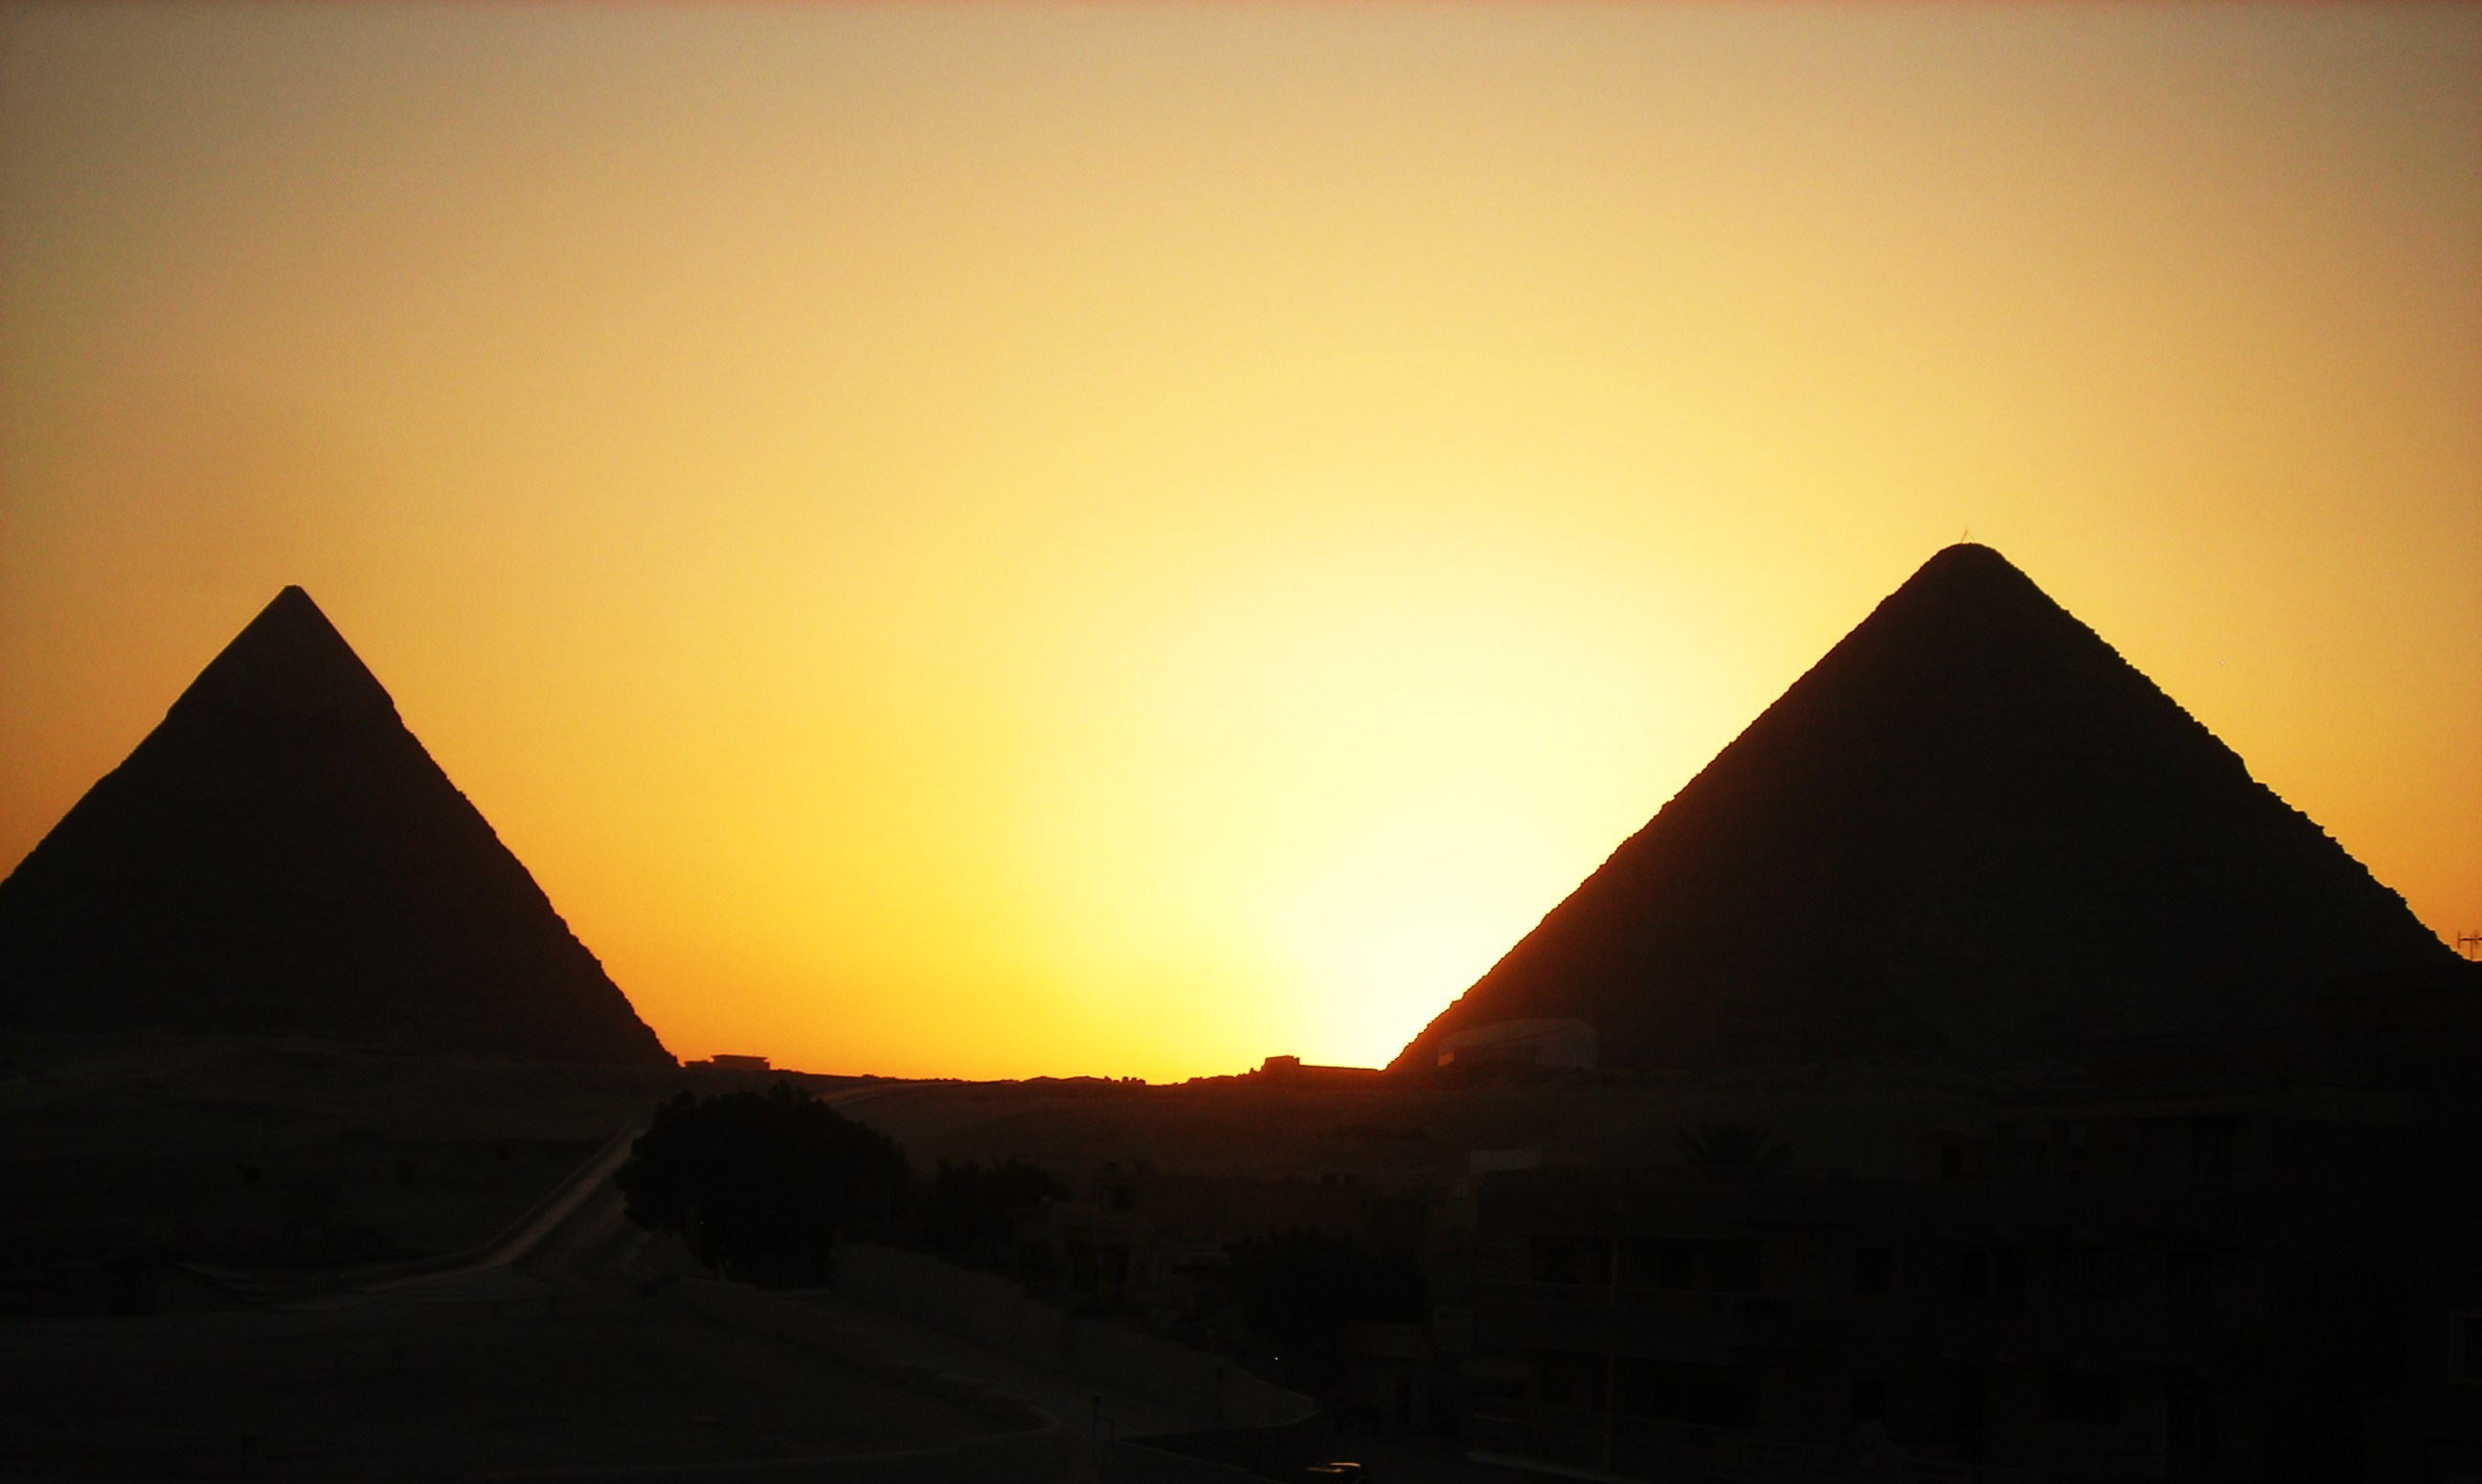 pyramid background - photo #25